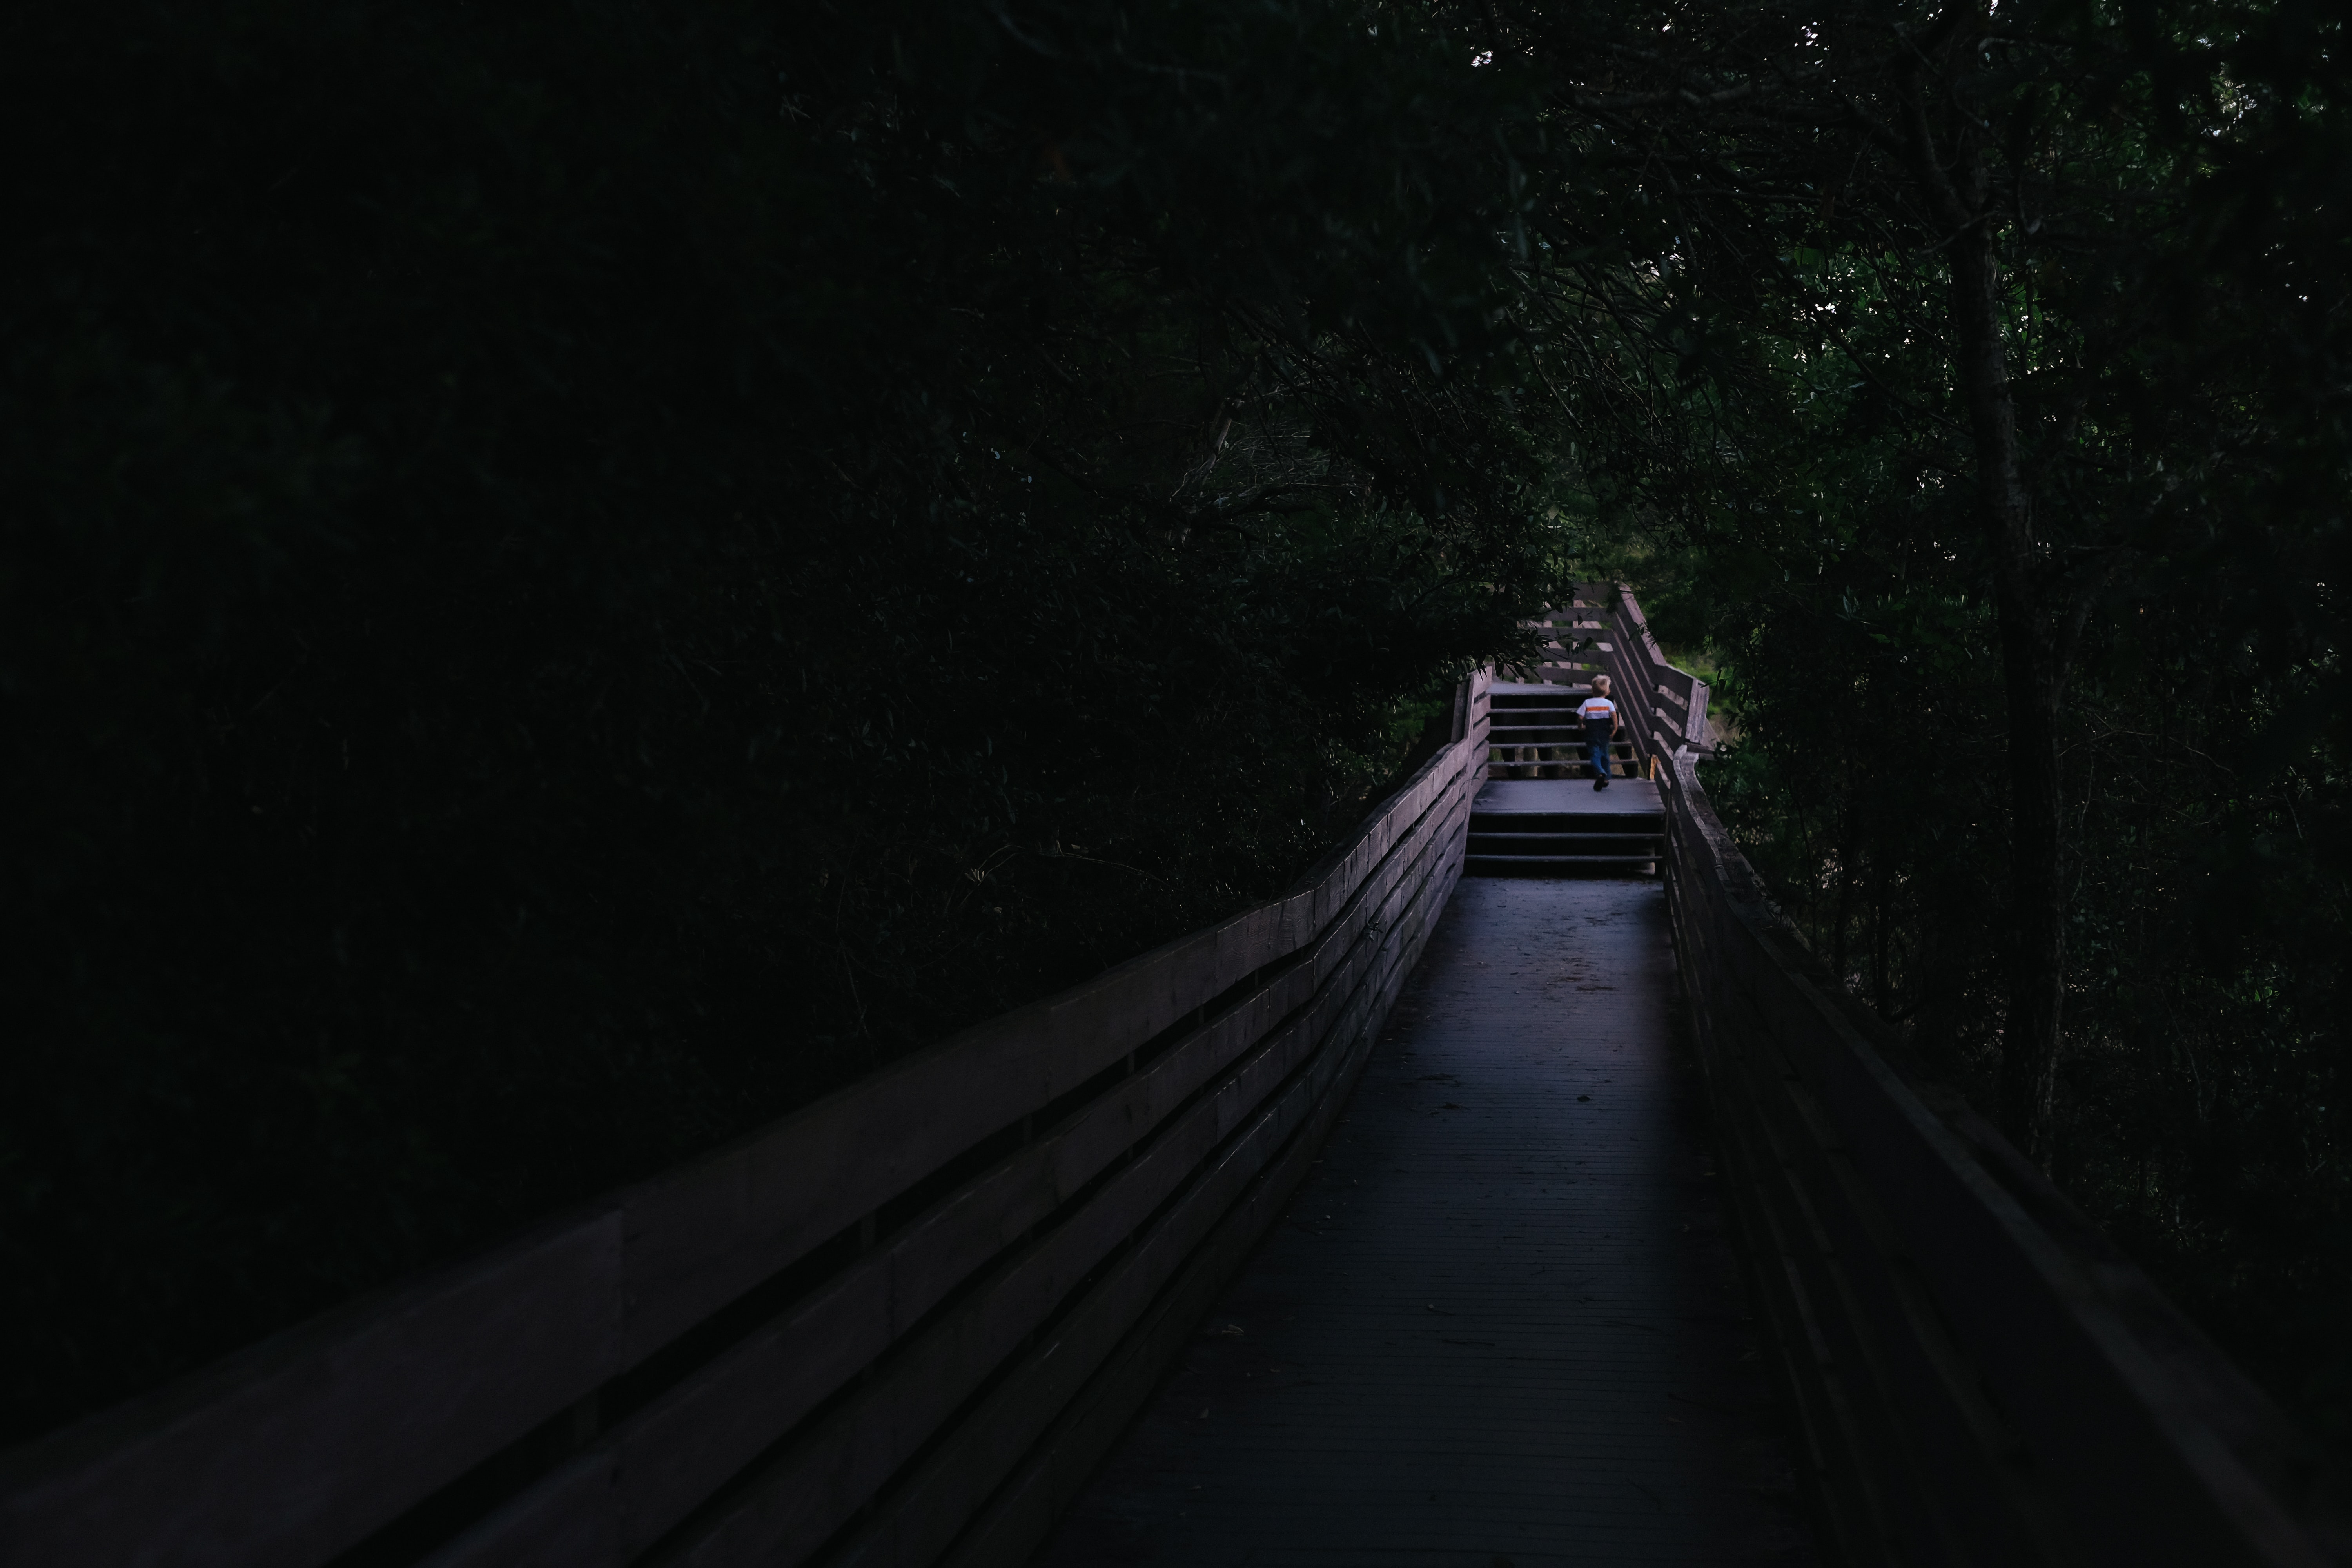 A person walking along a railed pathway at Bay Bluffs Park in the middle of the night